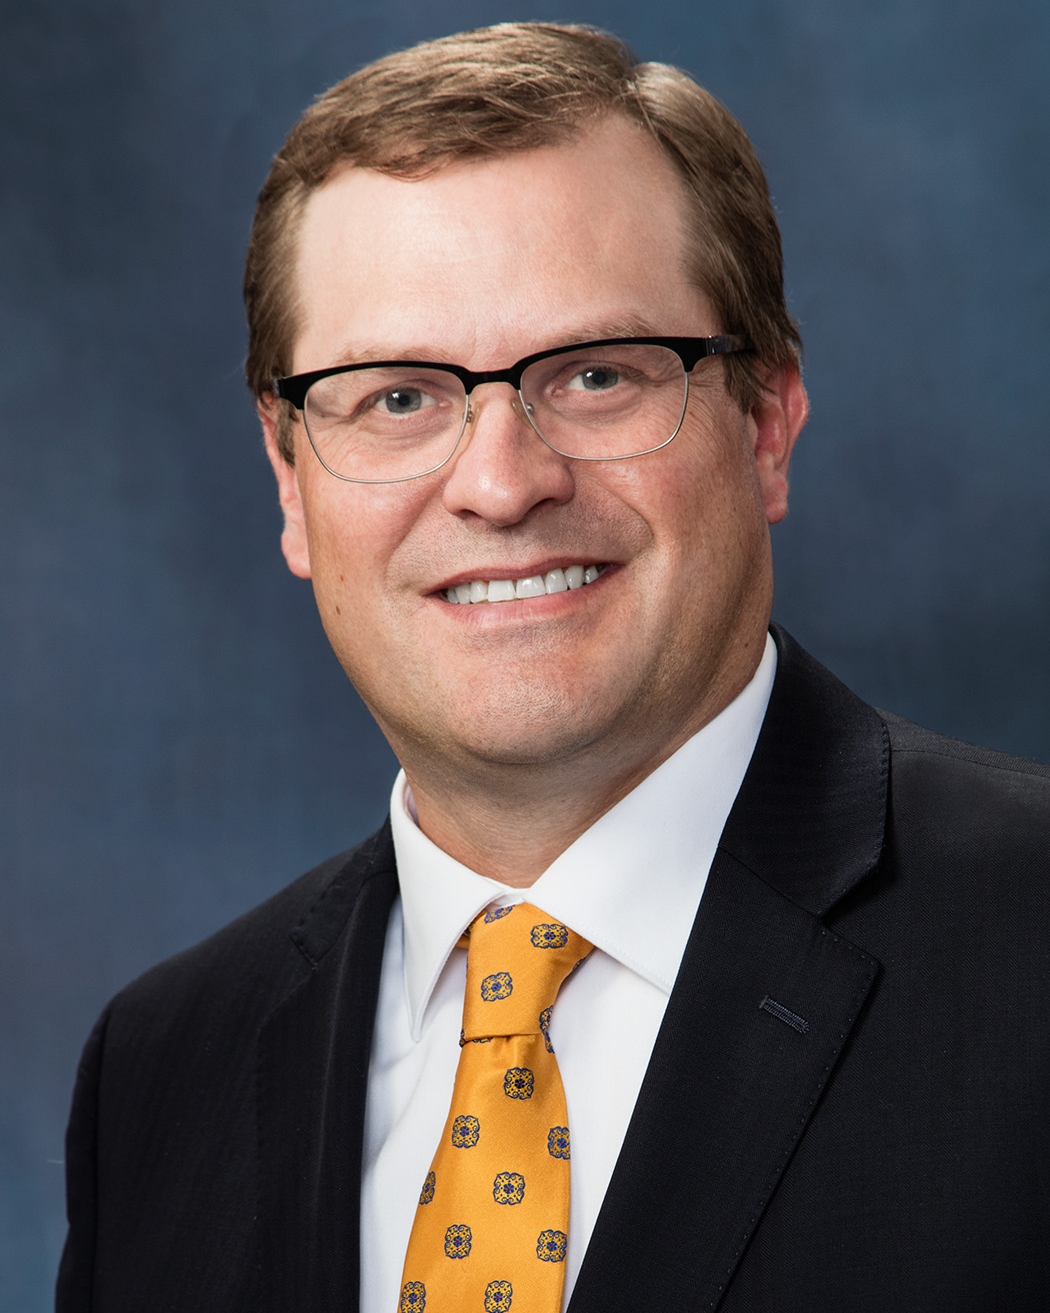 John Caldwell   Vice President of Business Banking, Bremer Bank